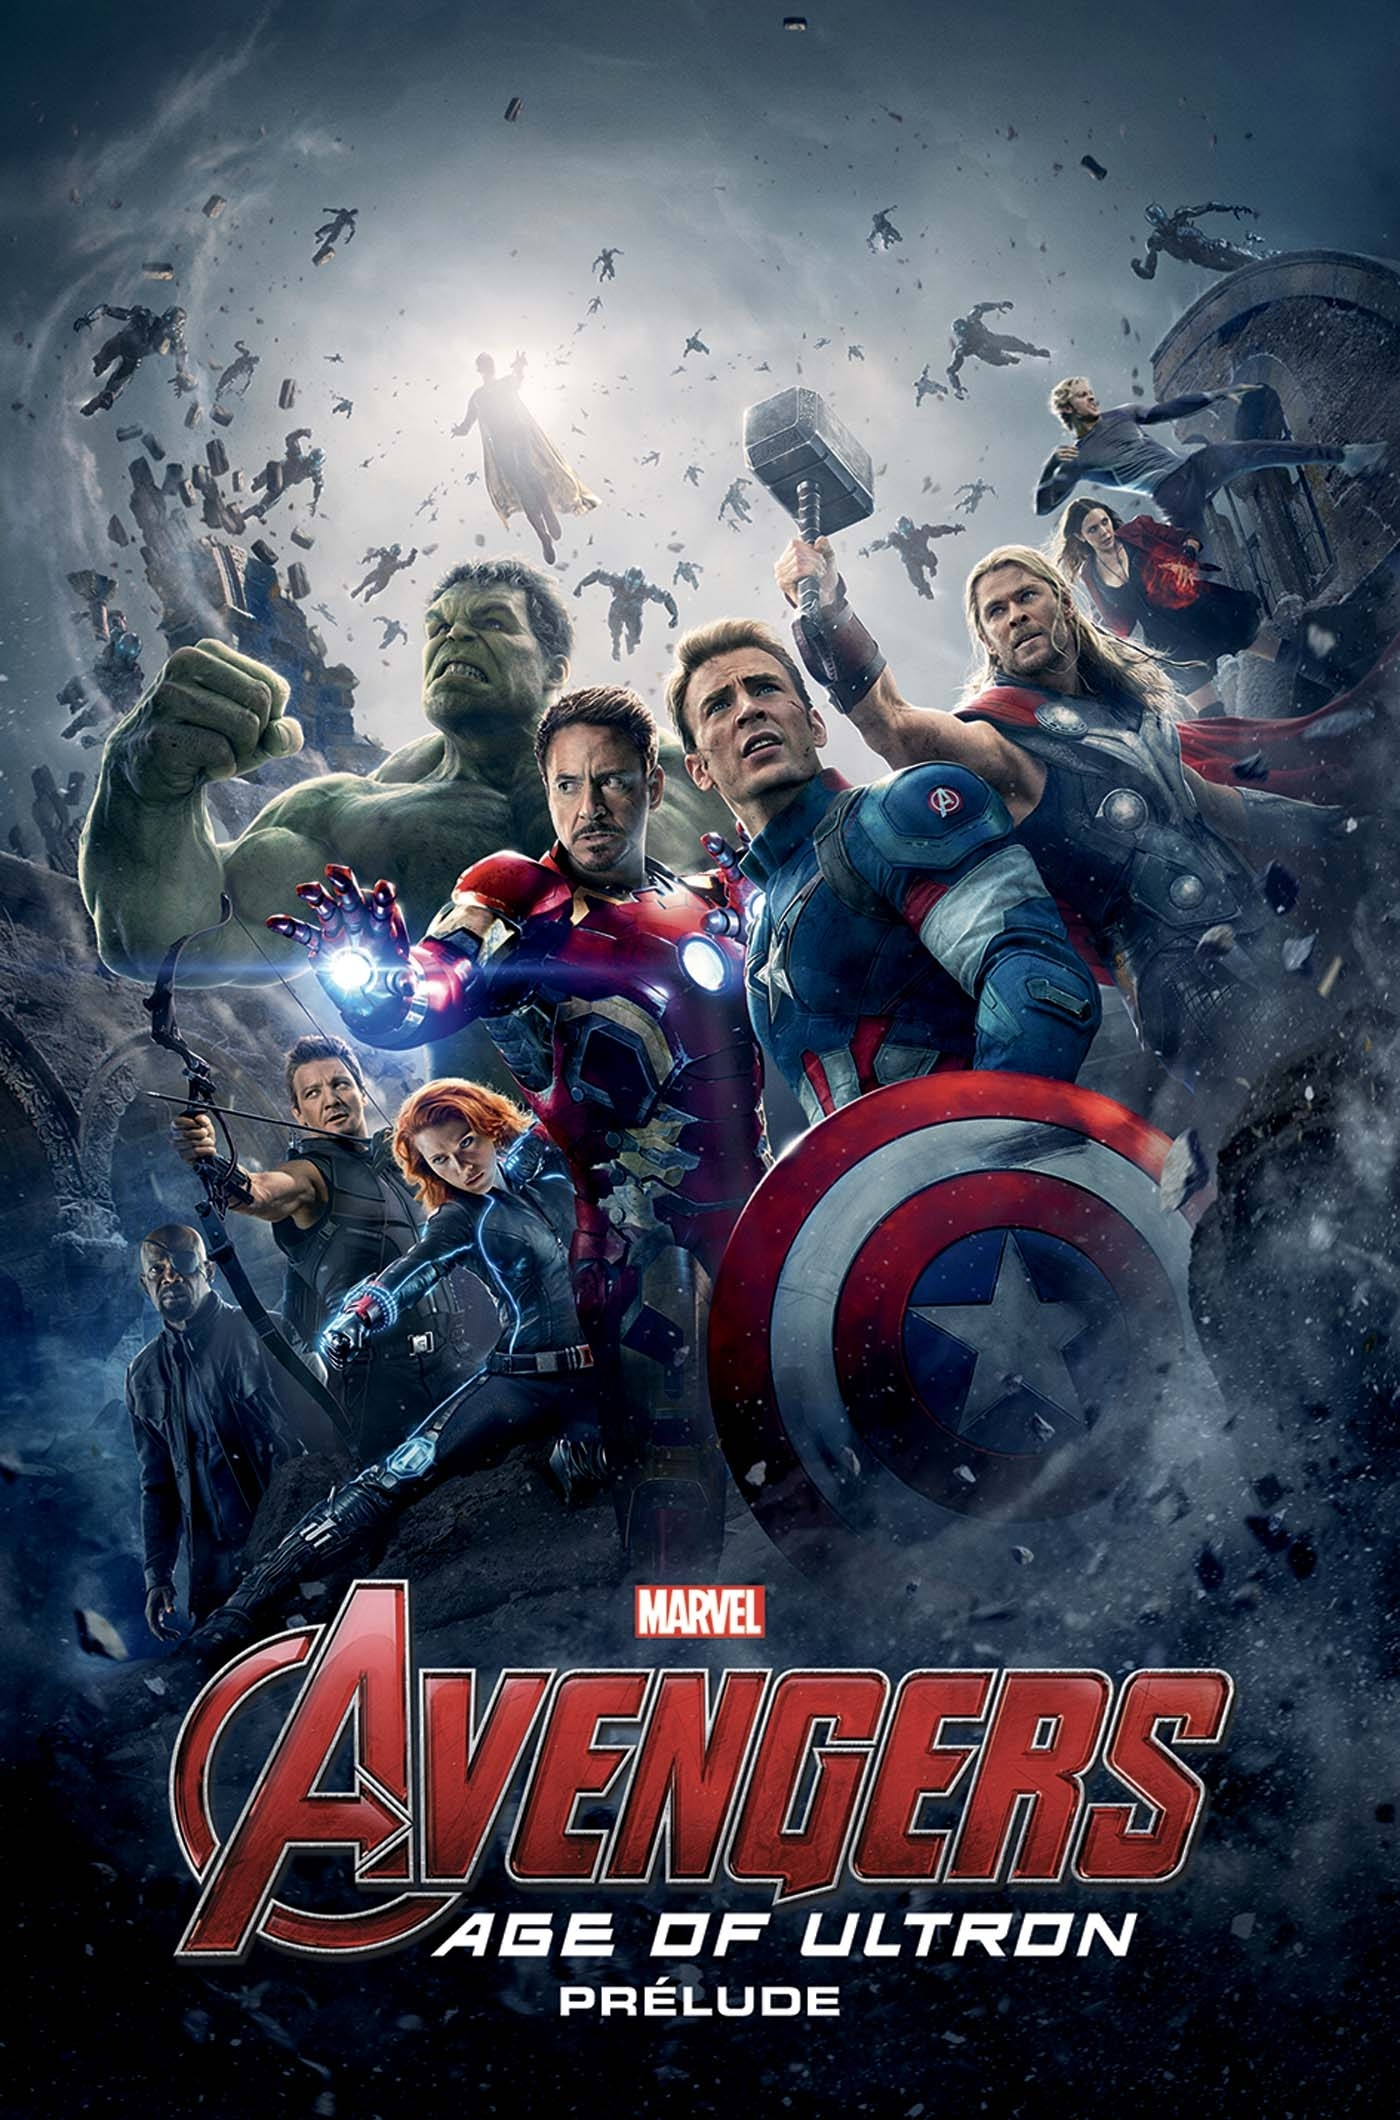 AVENGERS AGE OF ULTRON: PRELUDE